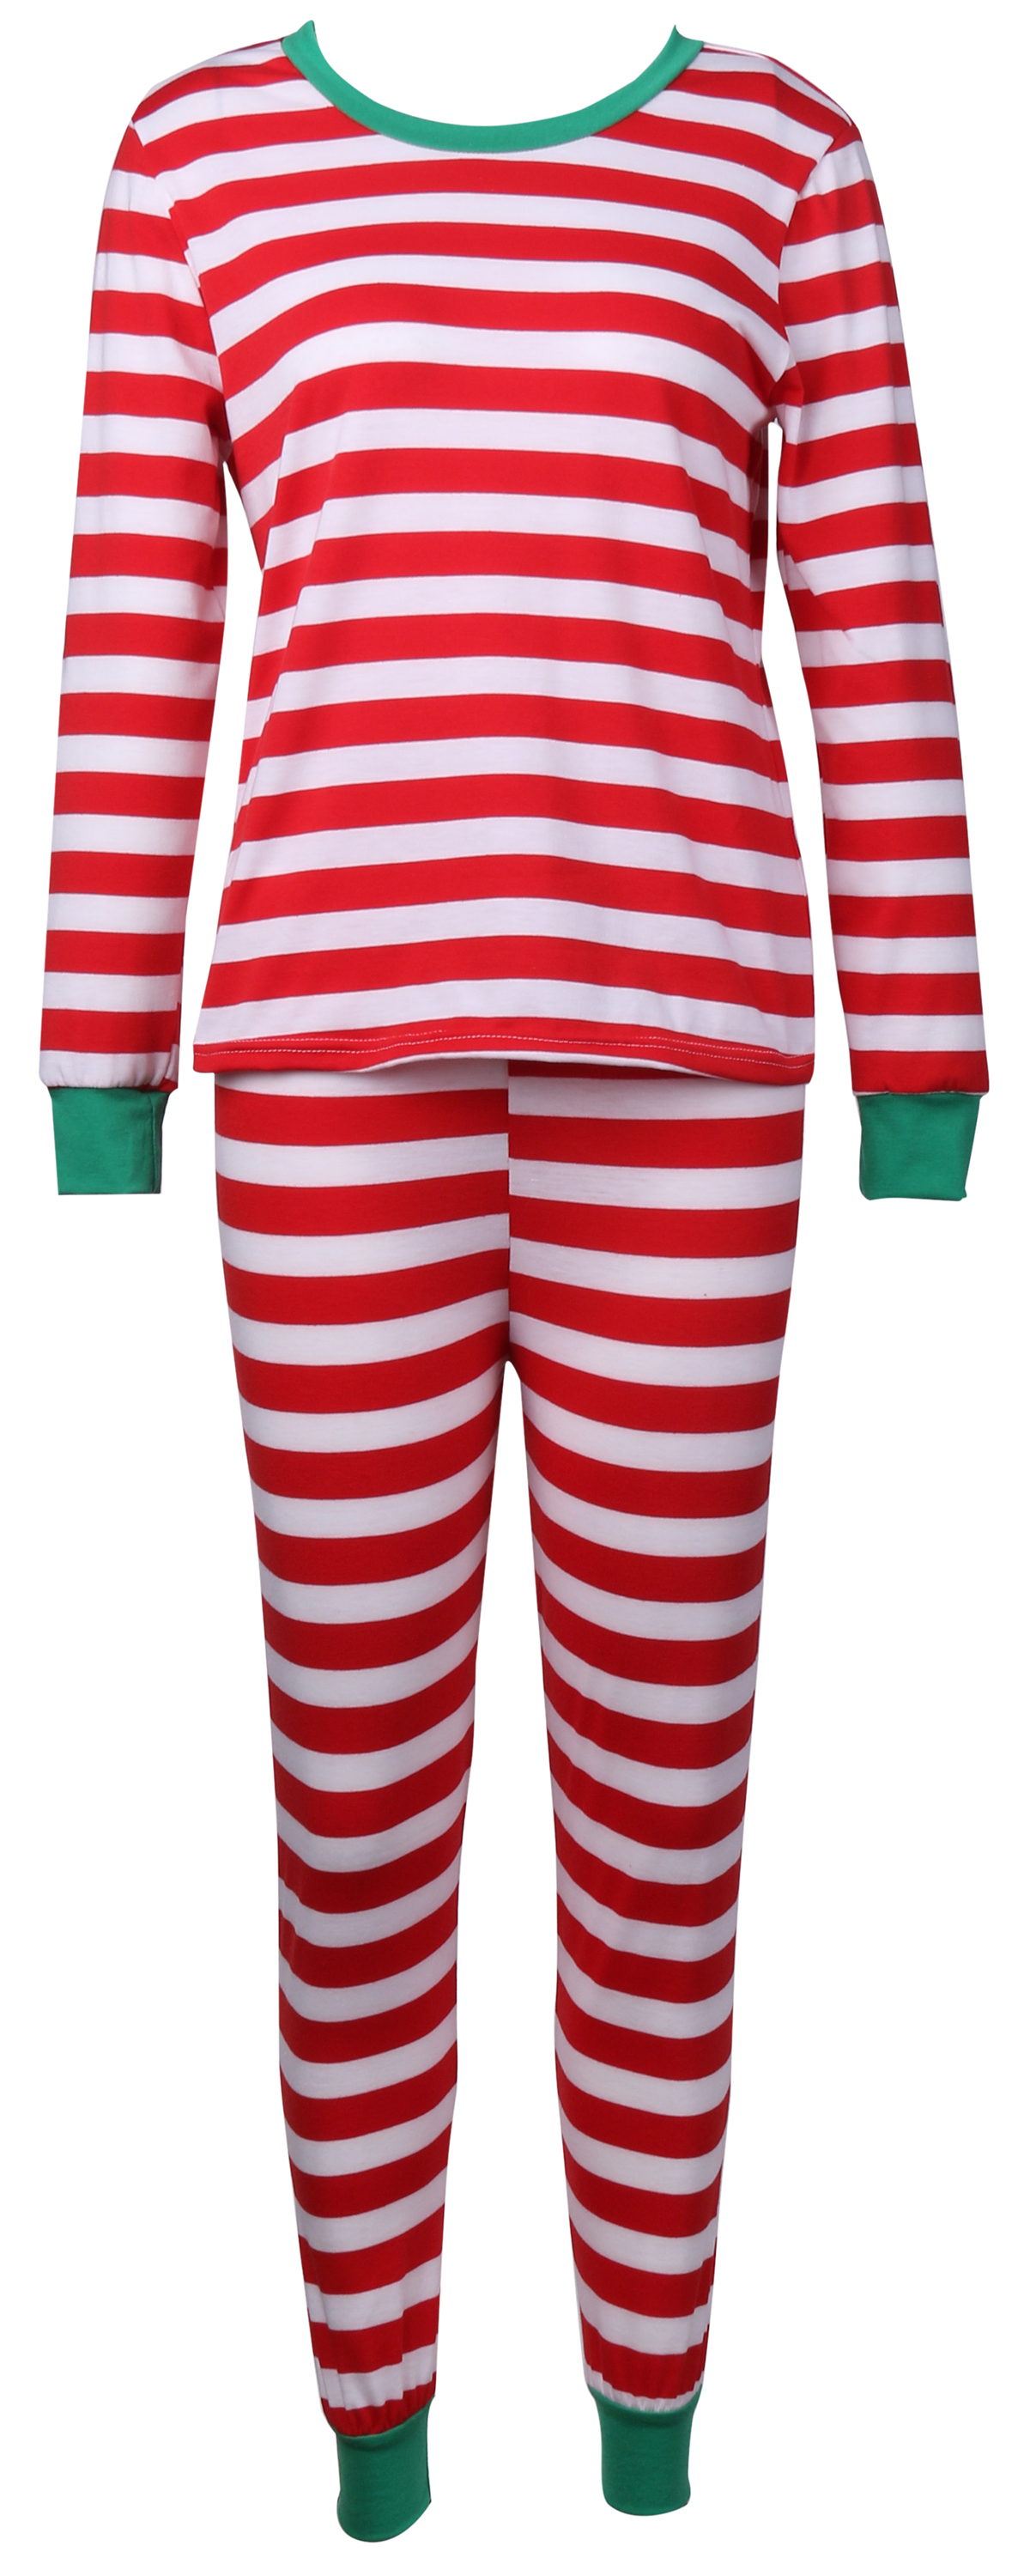 s Womens Mens Unisex Pyjamas Christmas Xmas Pajamas Adult Set Cotton Nightwear Sleepwear(Without Kids Set)